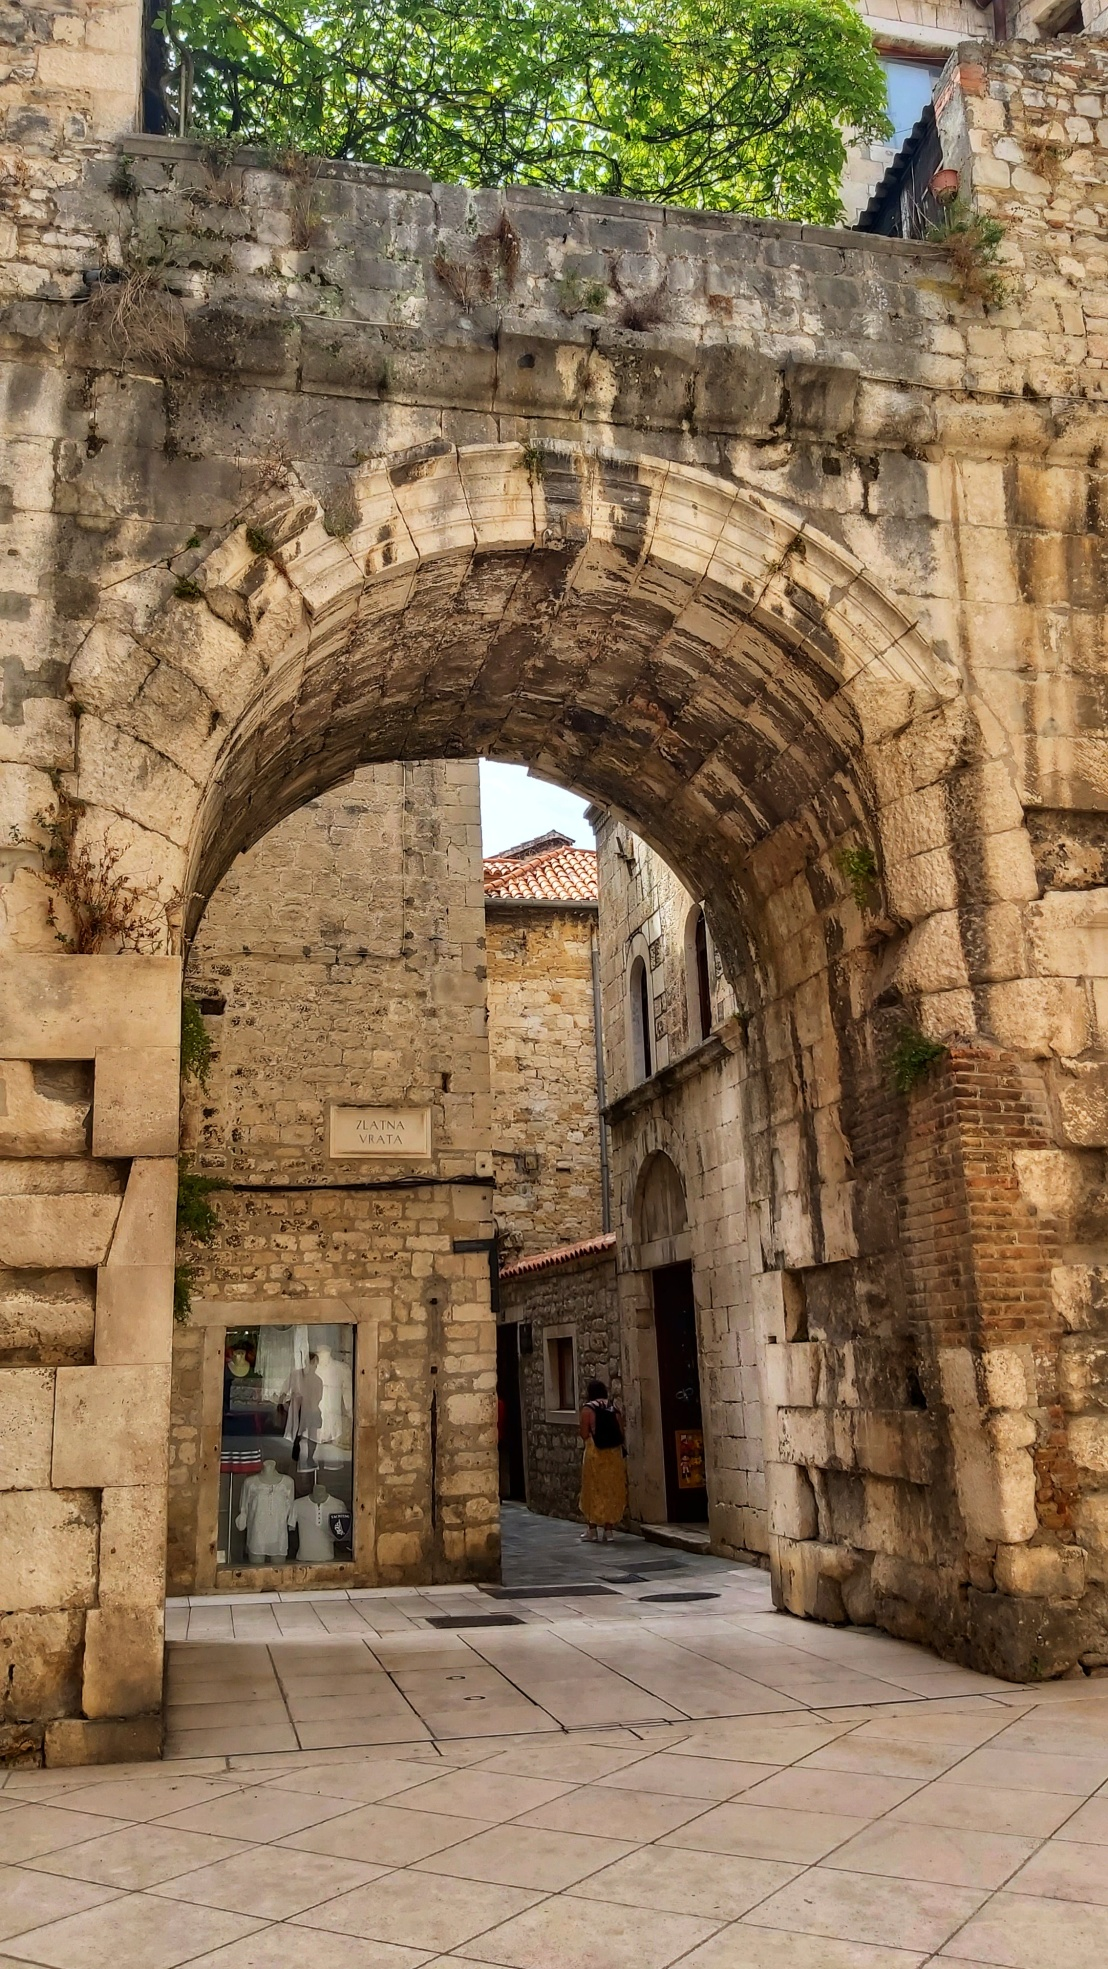 A gate to Diocletian's Palace in Split, Croatia